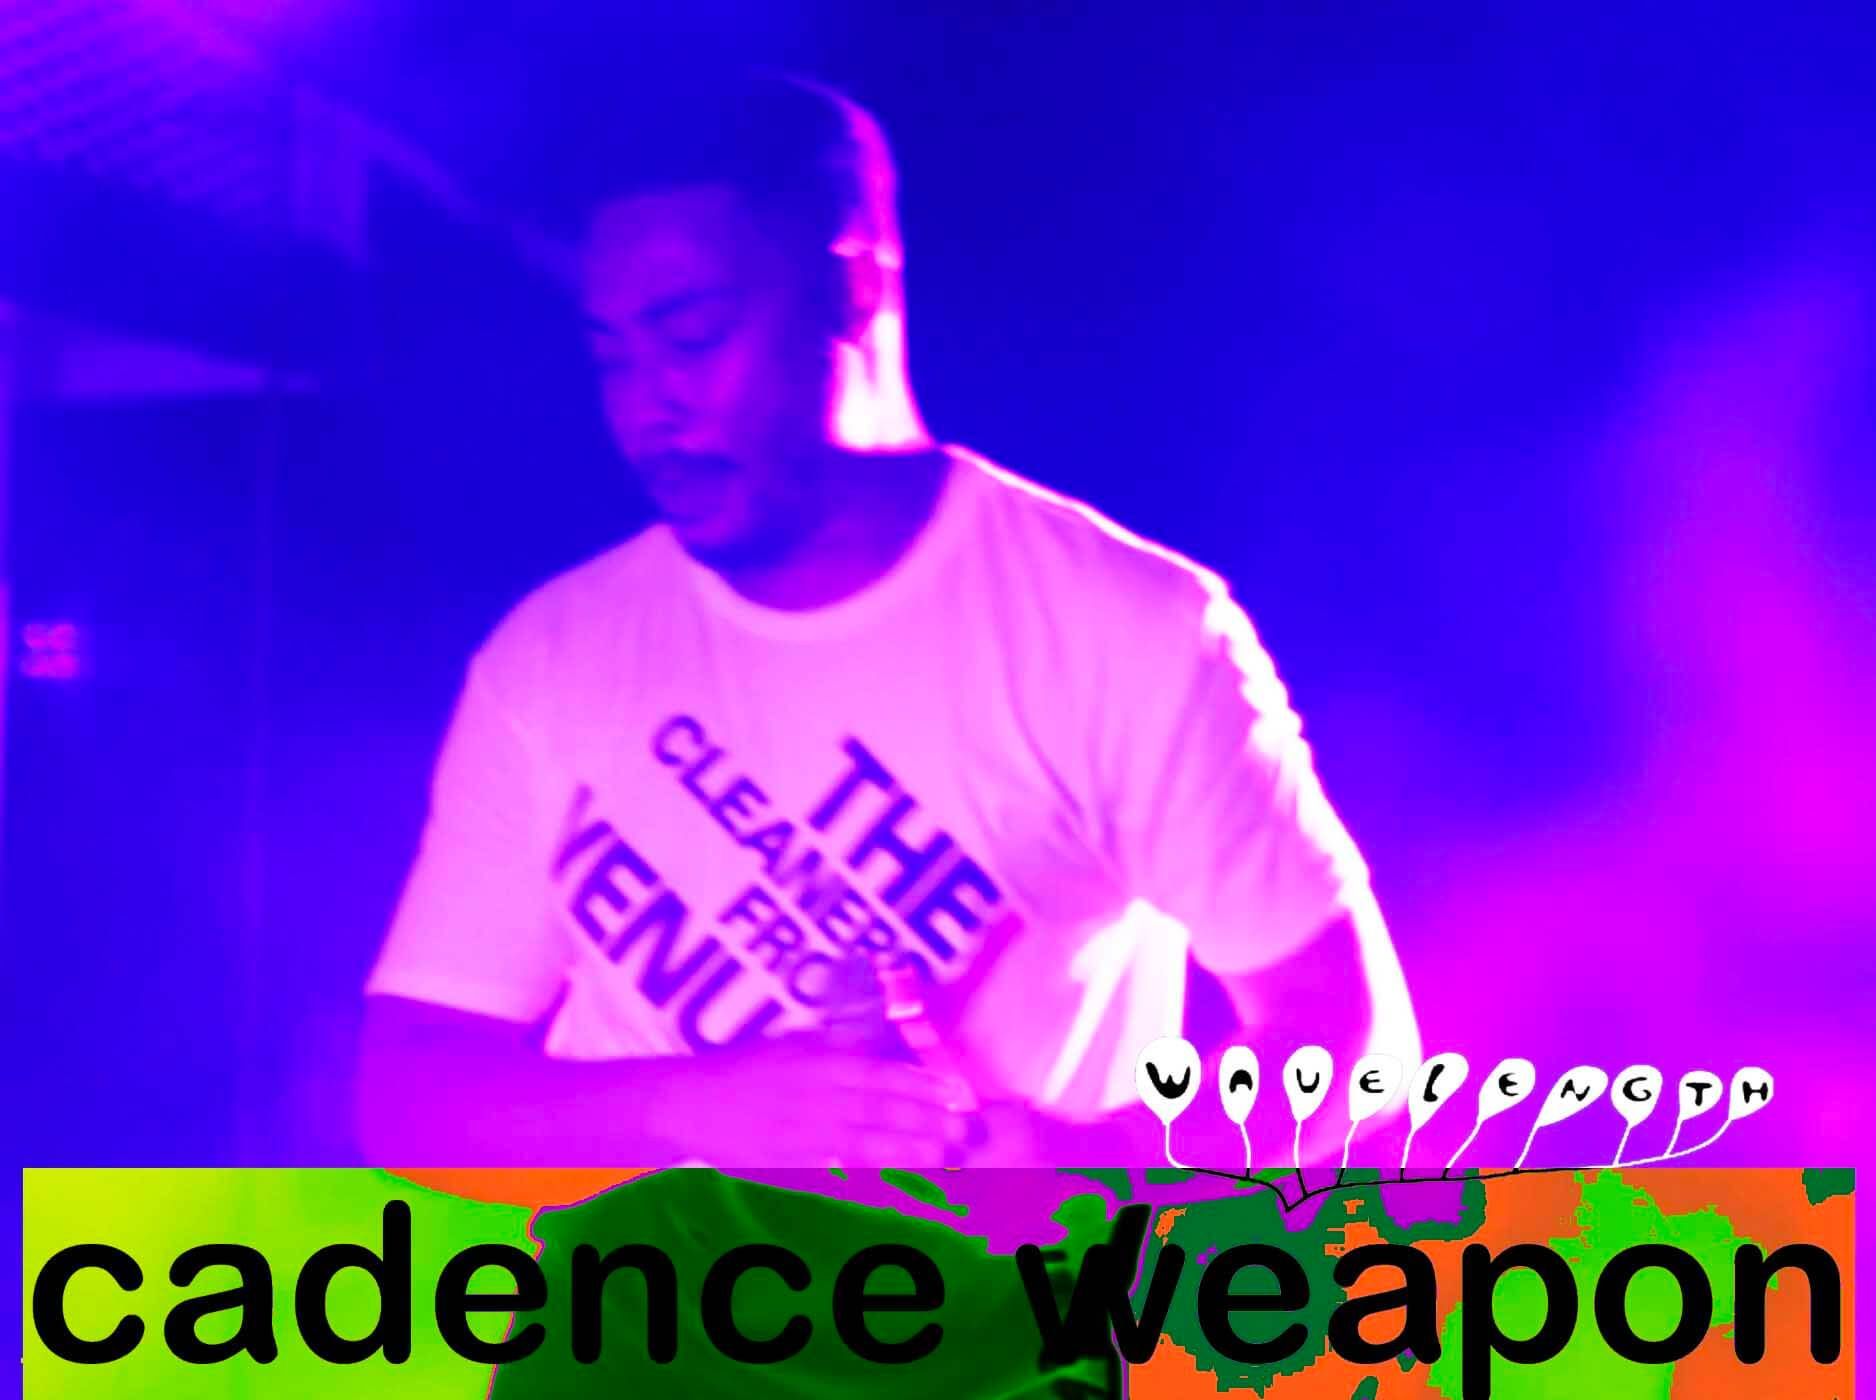 Cadence Weapon LIVE from the Wavelength Camp Cruise!